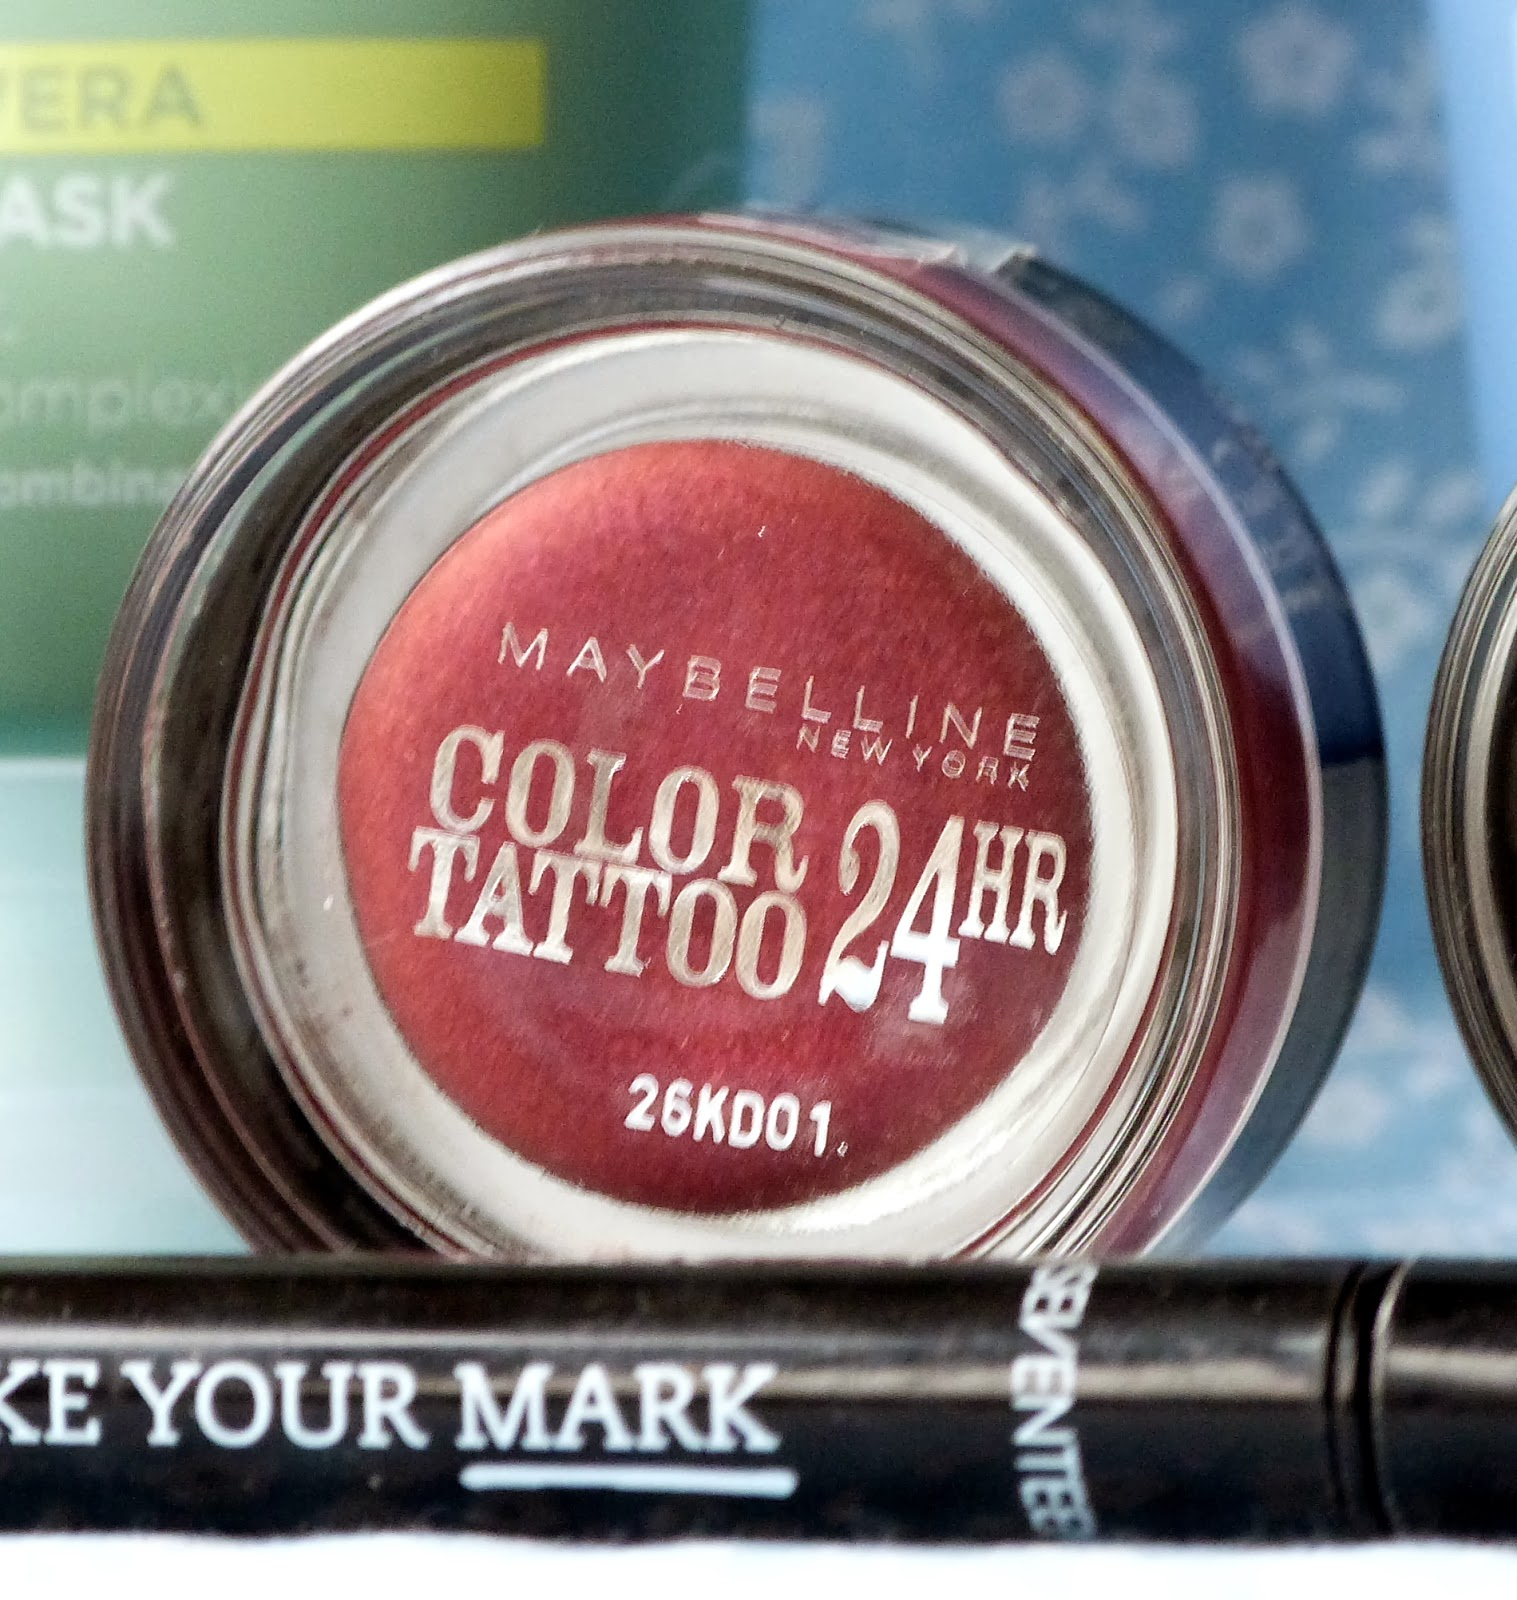 Maybelline Colour Tattoo in Metallic Pomegranate